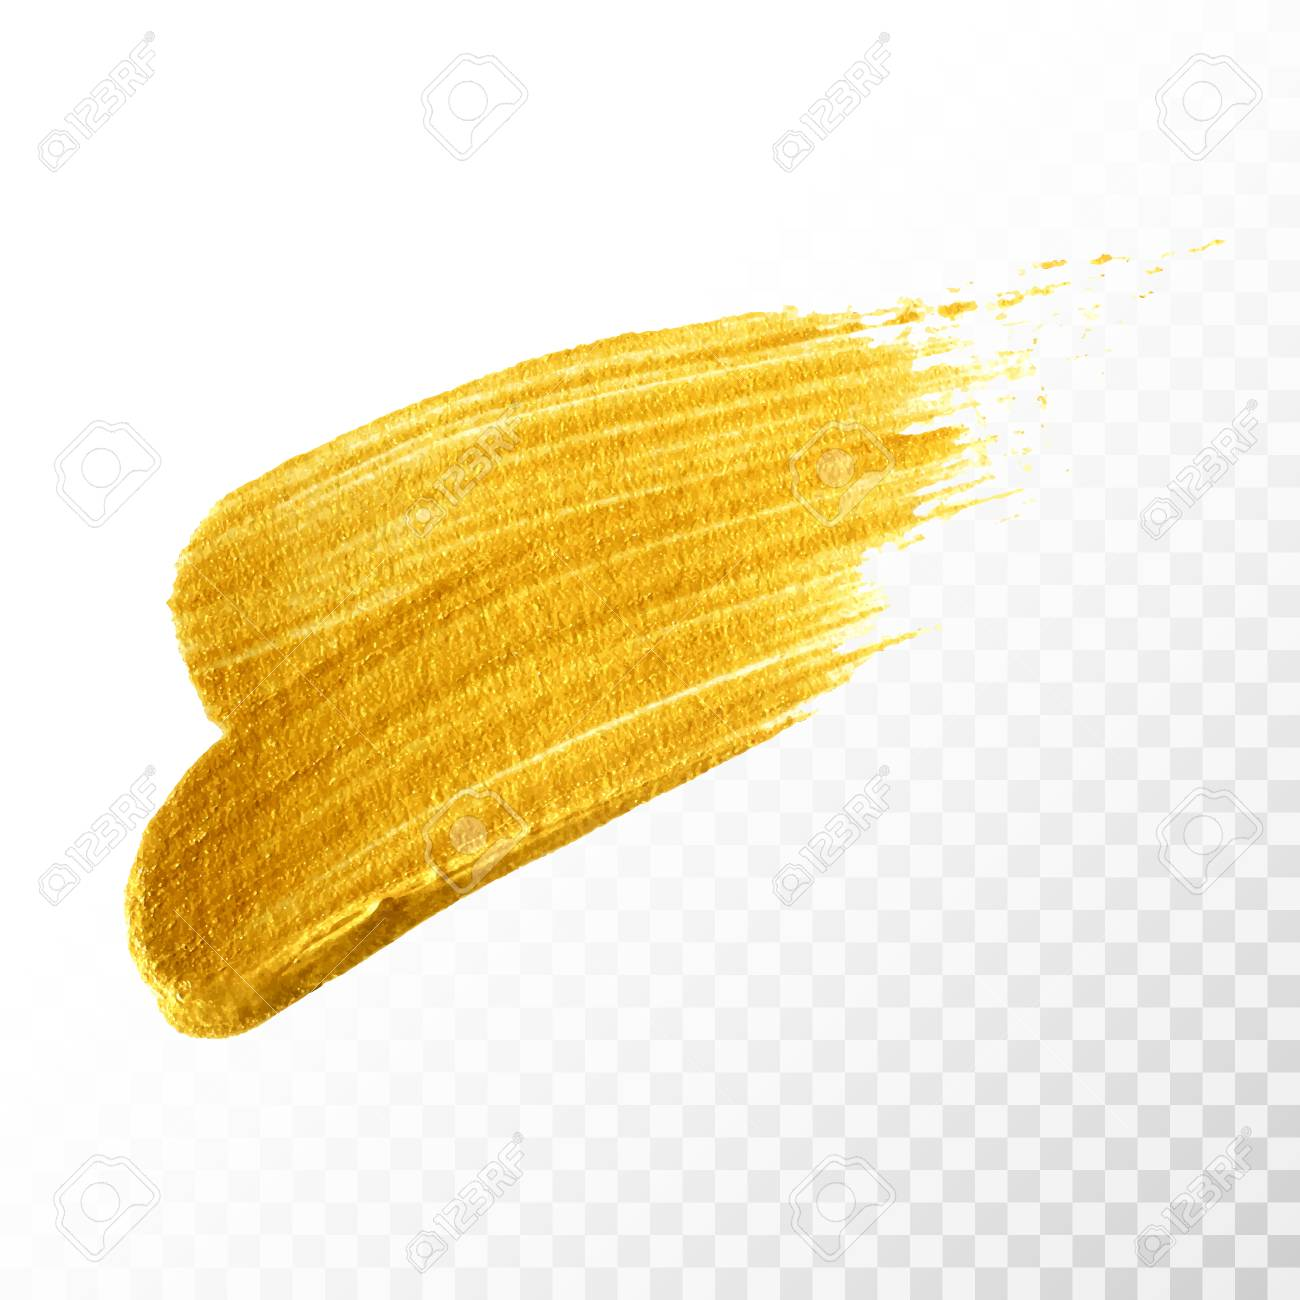 Gold Hand Drawn Paint Brush Stroke Isolated On Transparent